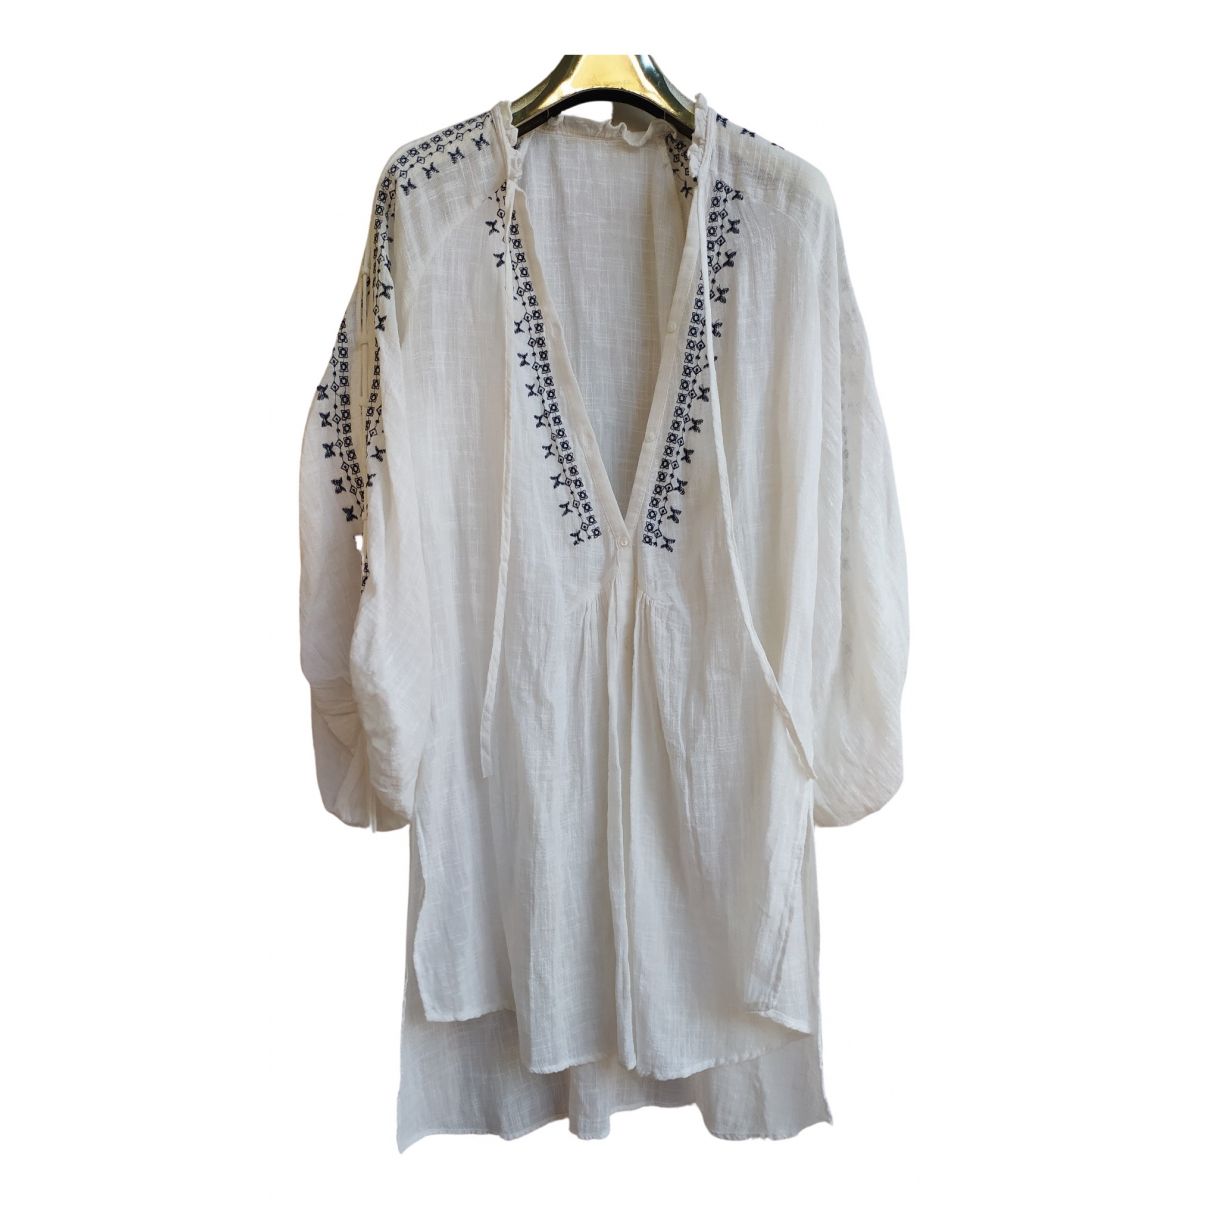 Non Signé / Unsigned Hippie Chic White Linen dress for Women One Size International